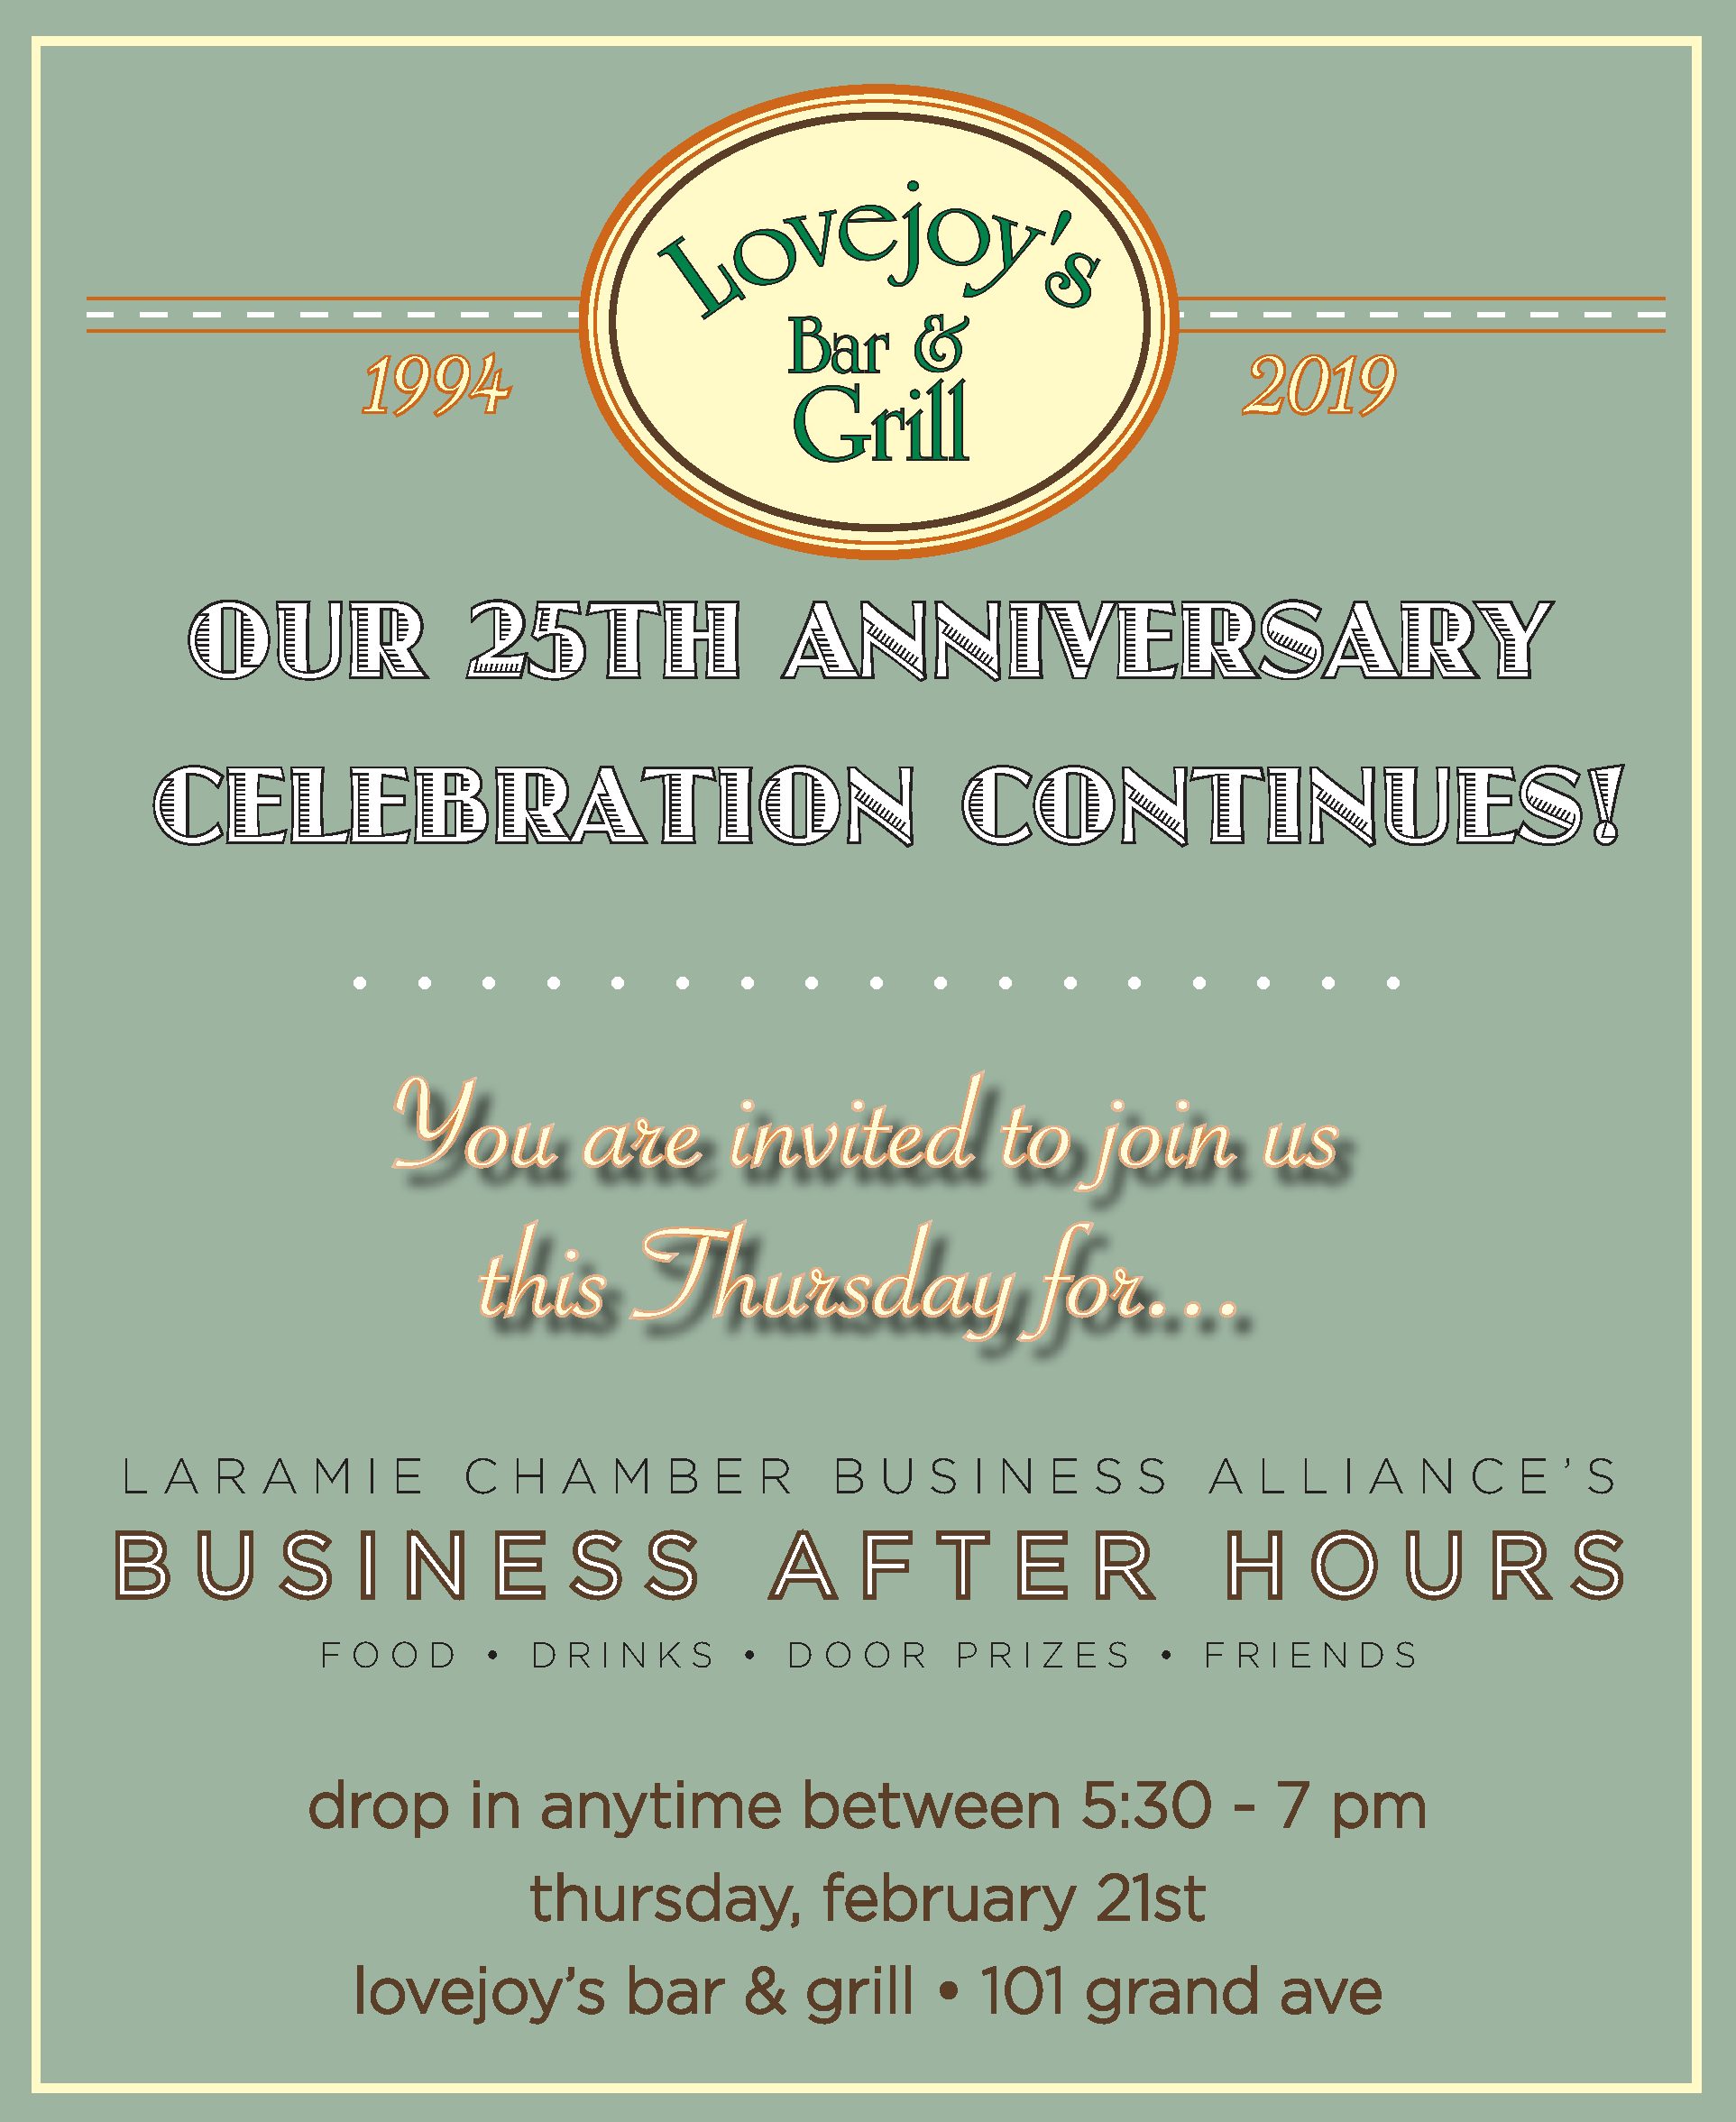 Business AfterHours at Lovejoys